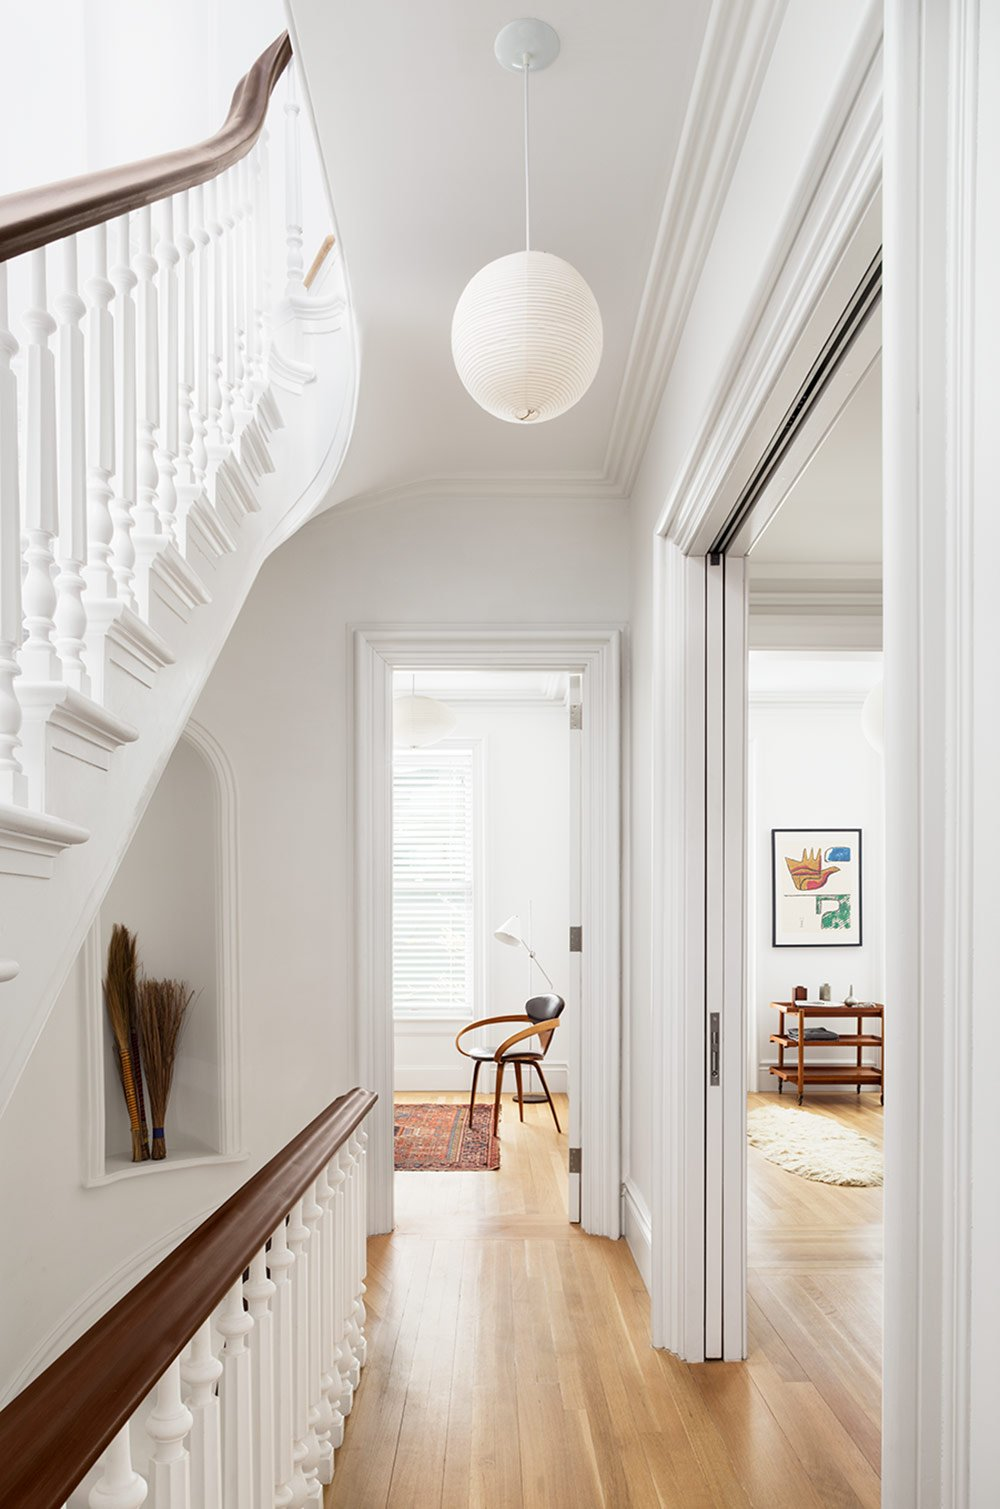 brownstone-renovation-prospect-park-brooklyn-10